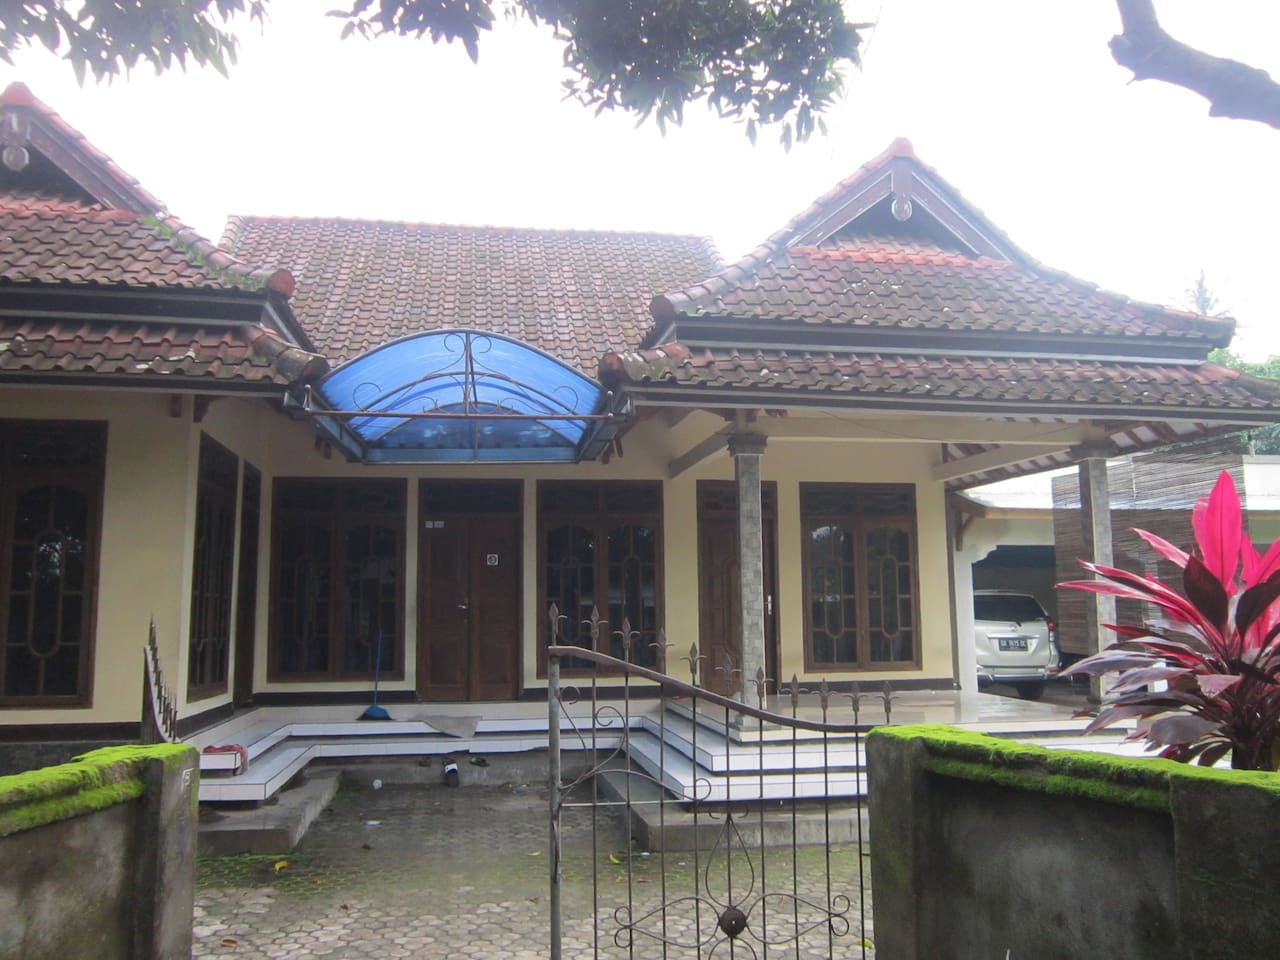 This is the main entrance of the house.